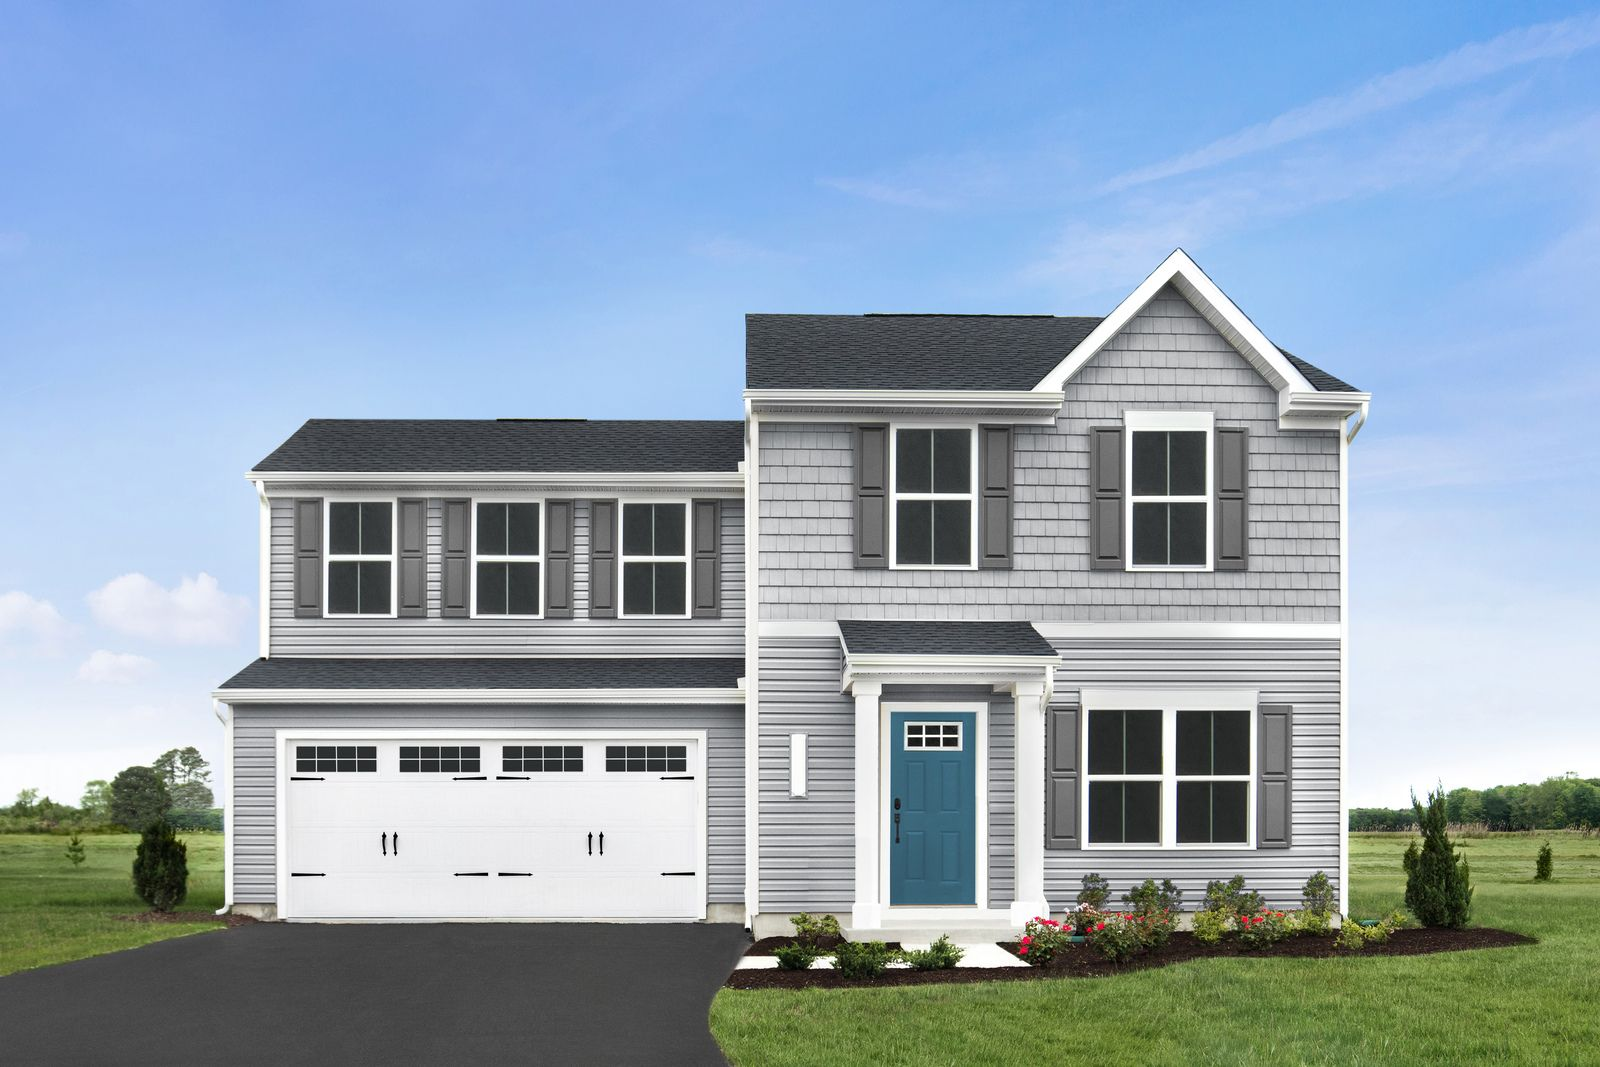 WELCOME TO BRIDLE PATH:Easily own a new single home in Lancaster County with up to 5 bedrooms, a basement, and all appliances included.Click here to join the VIP list for the first chance to buy a home here!